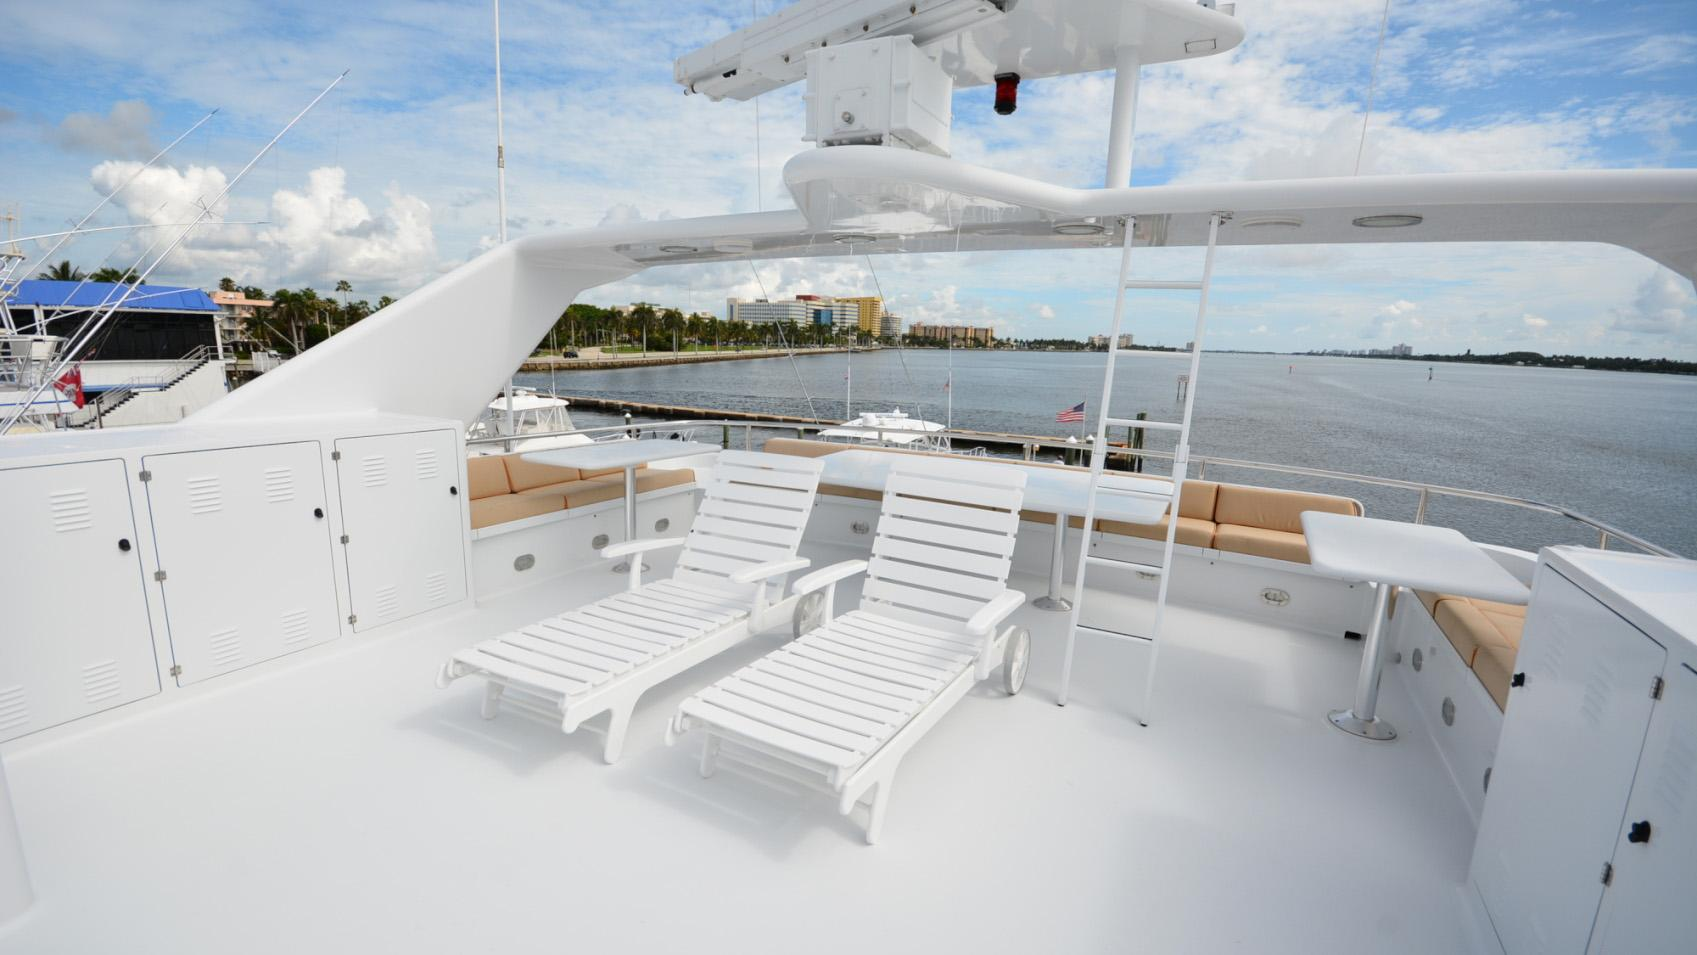 Ar De motor yacht for sale lounge upper deck